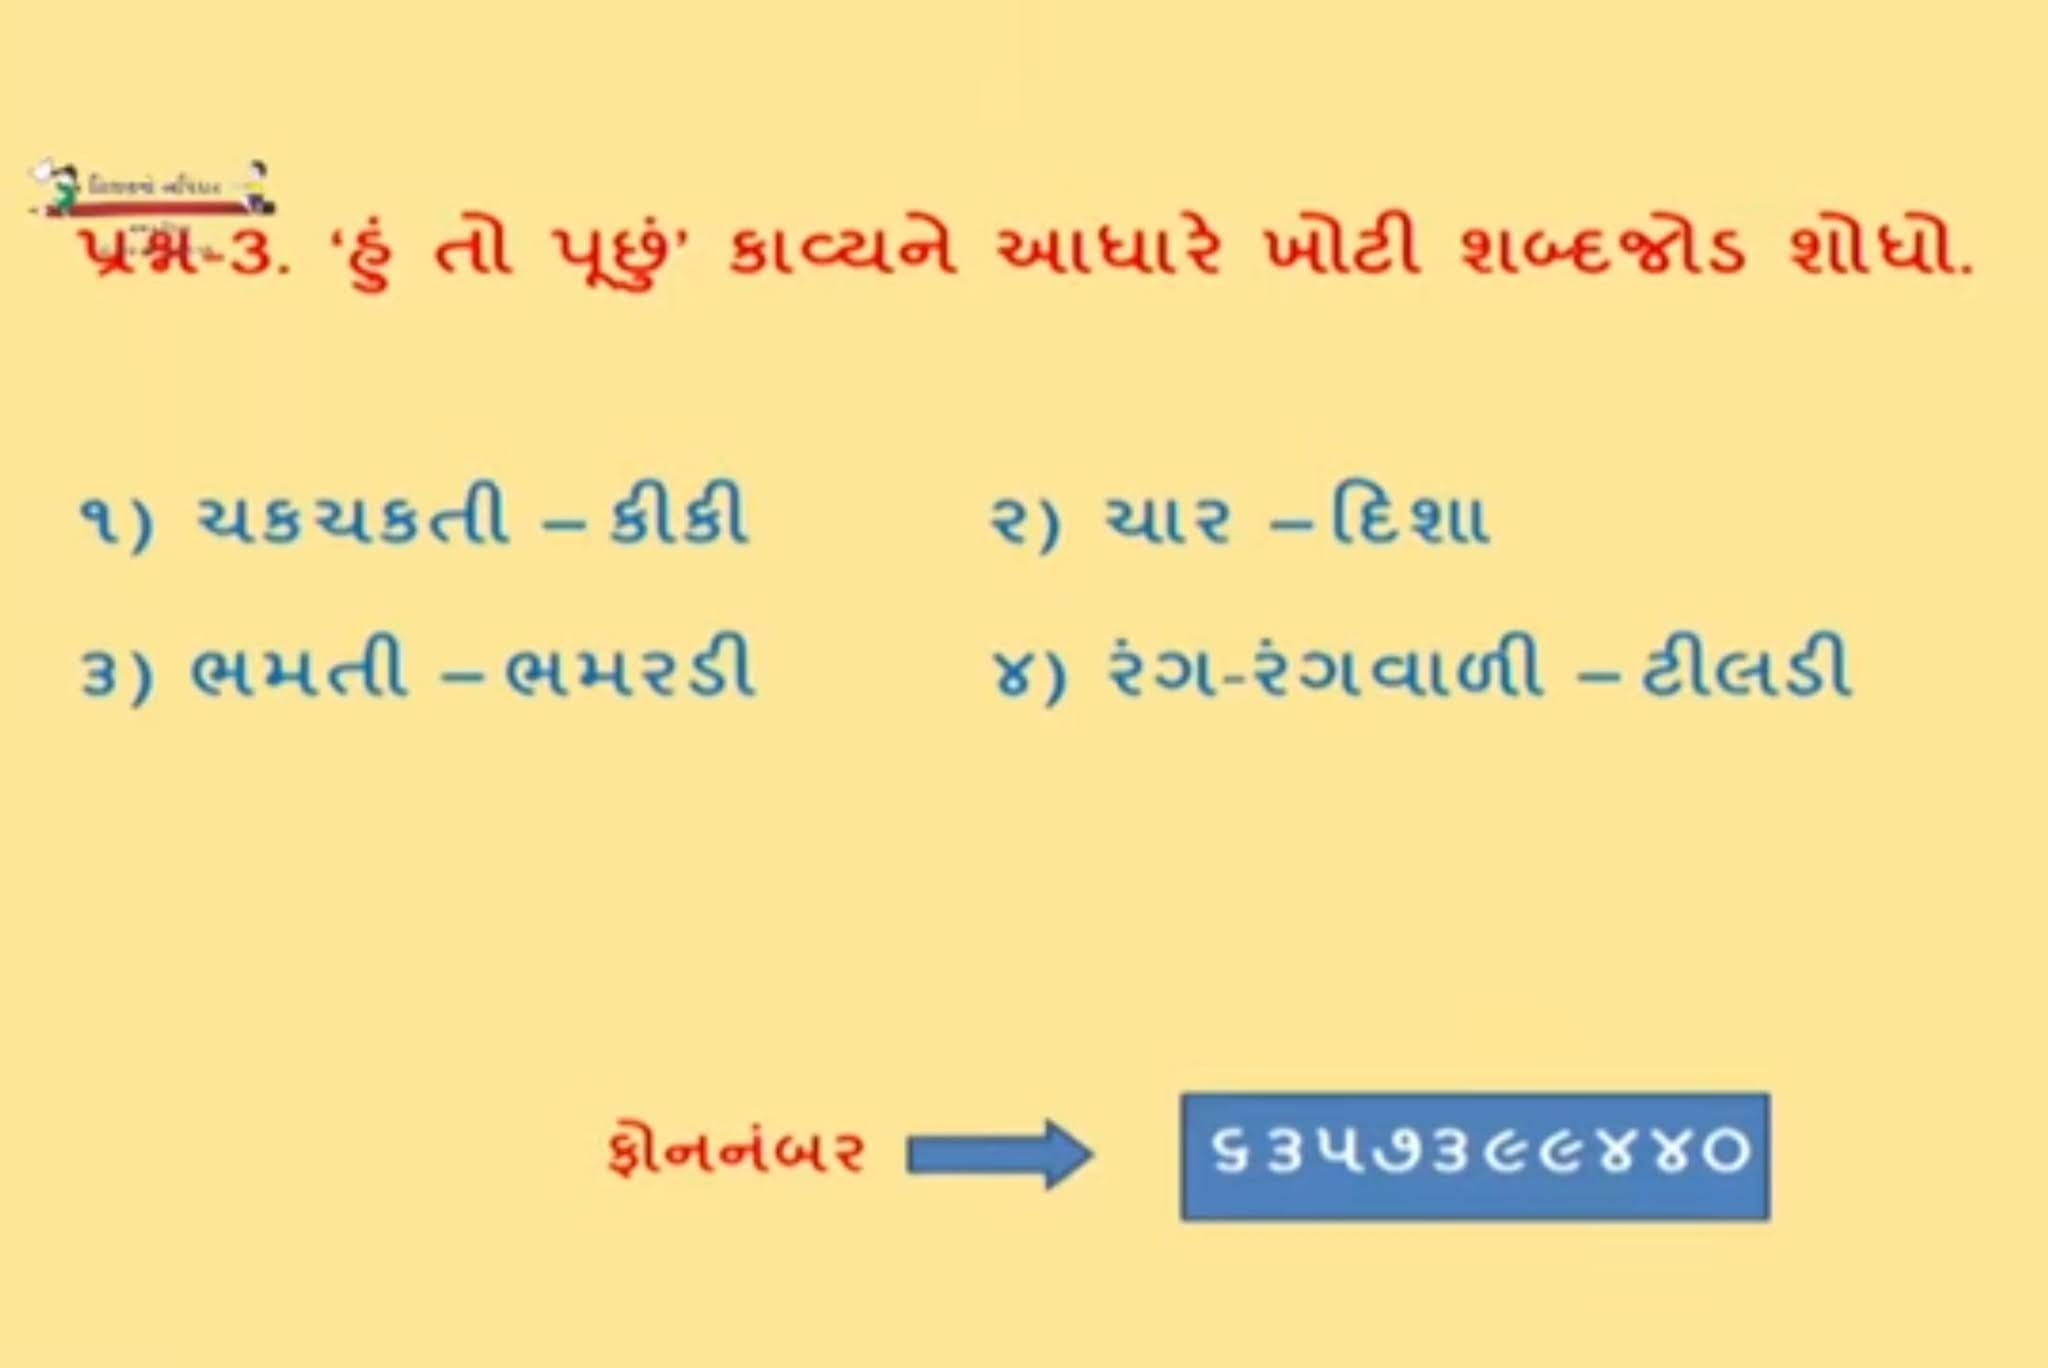 STD-3-4-5-DATE-14-12-2020-HOME-LEARNING-QUESTIONS-AND-ANSWERS.